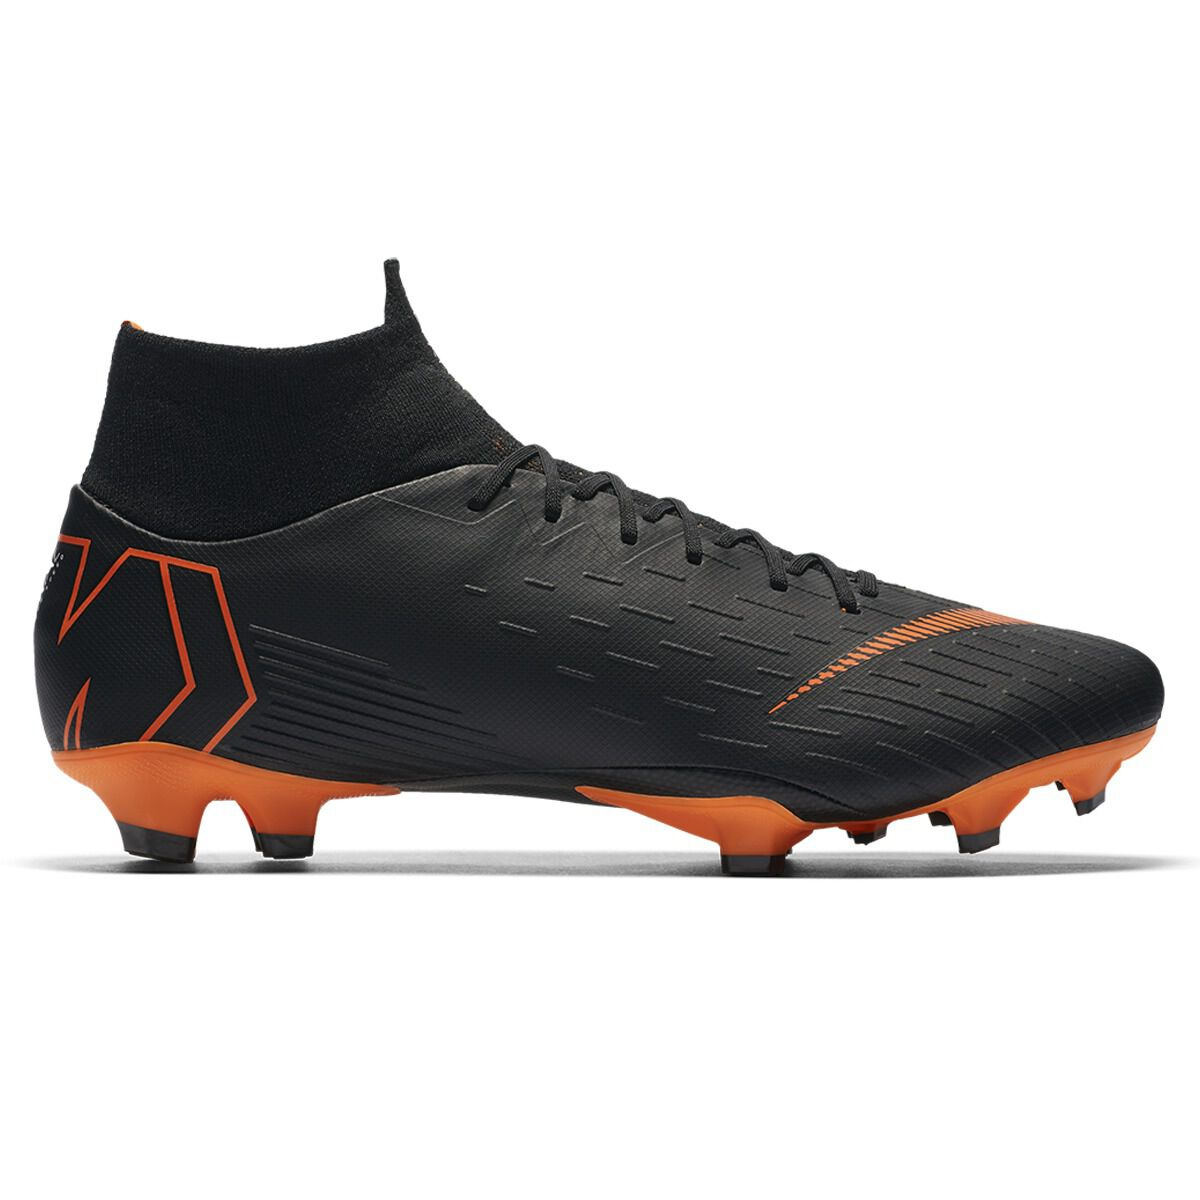 8e19ef2f0 ... coupon code for nike mercurial superfly vi pro mens football boots  black orange us 7 adult ...